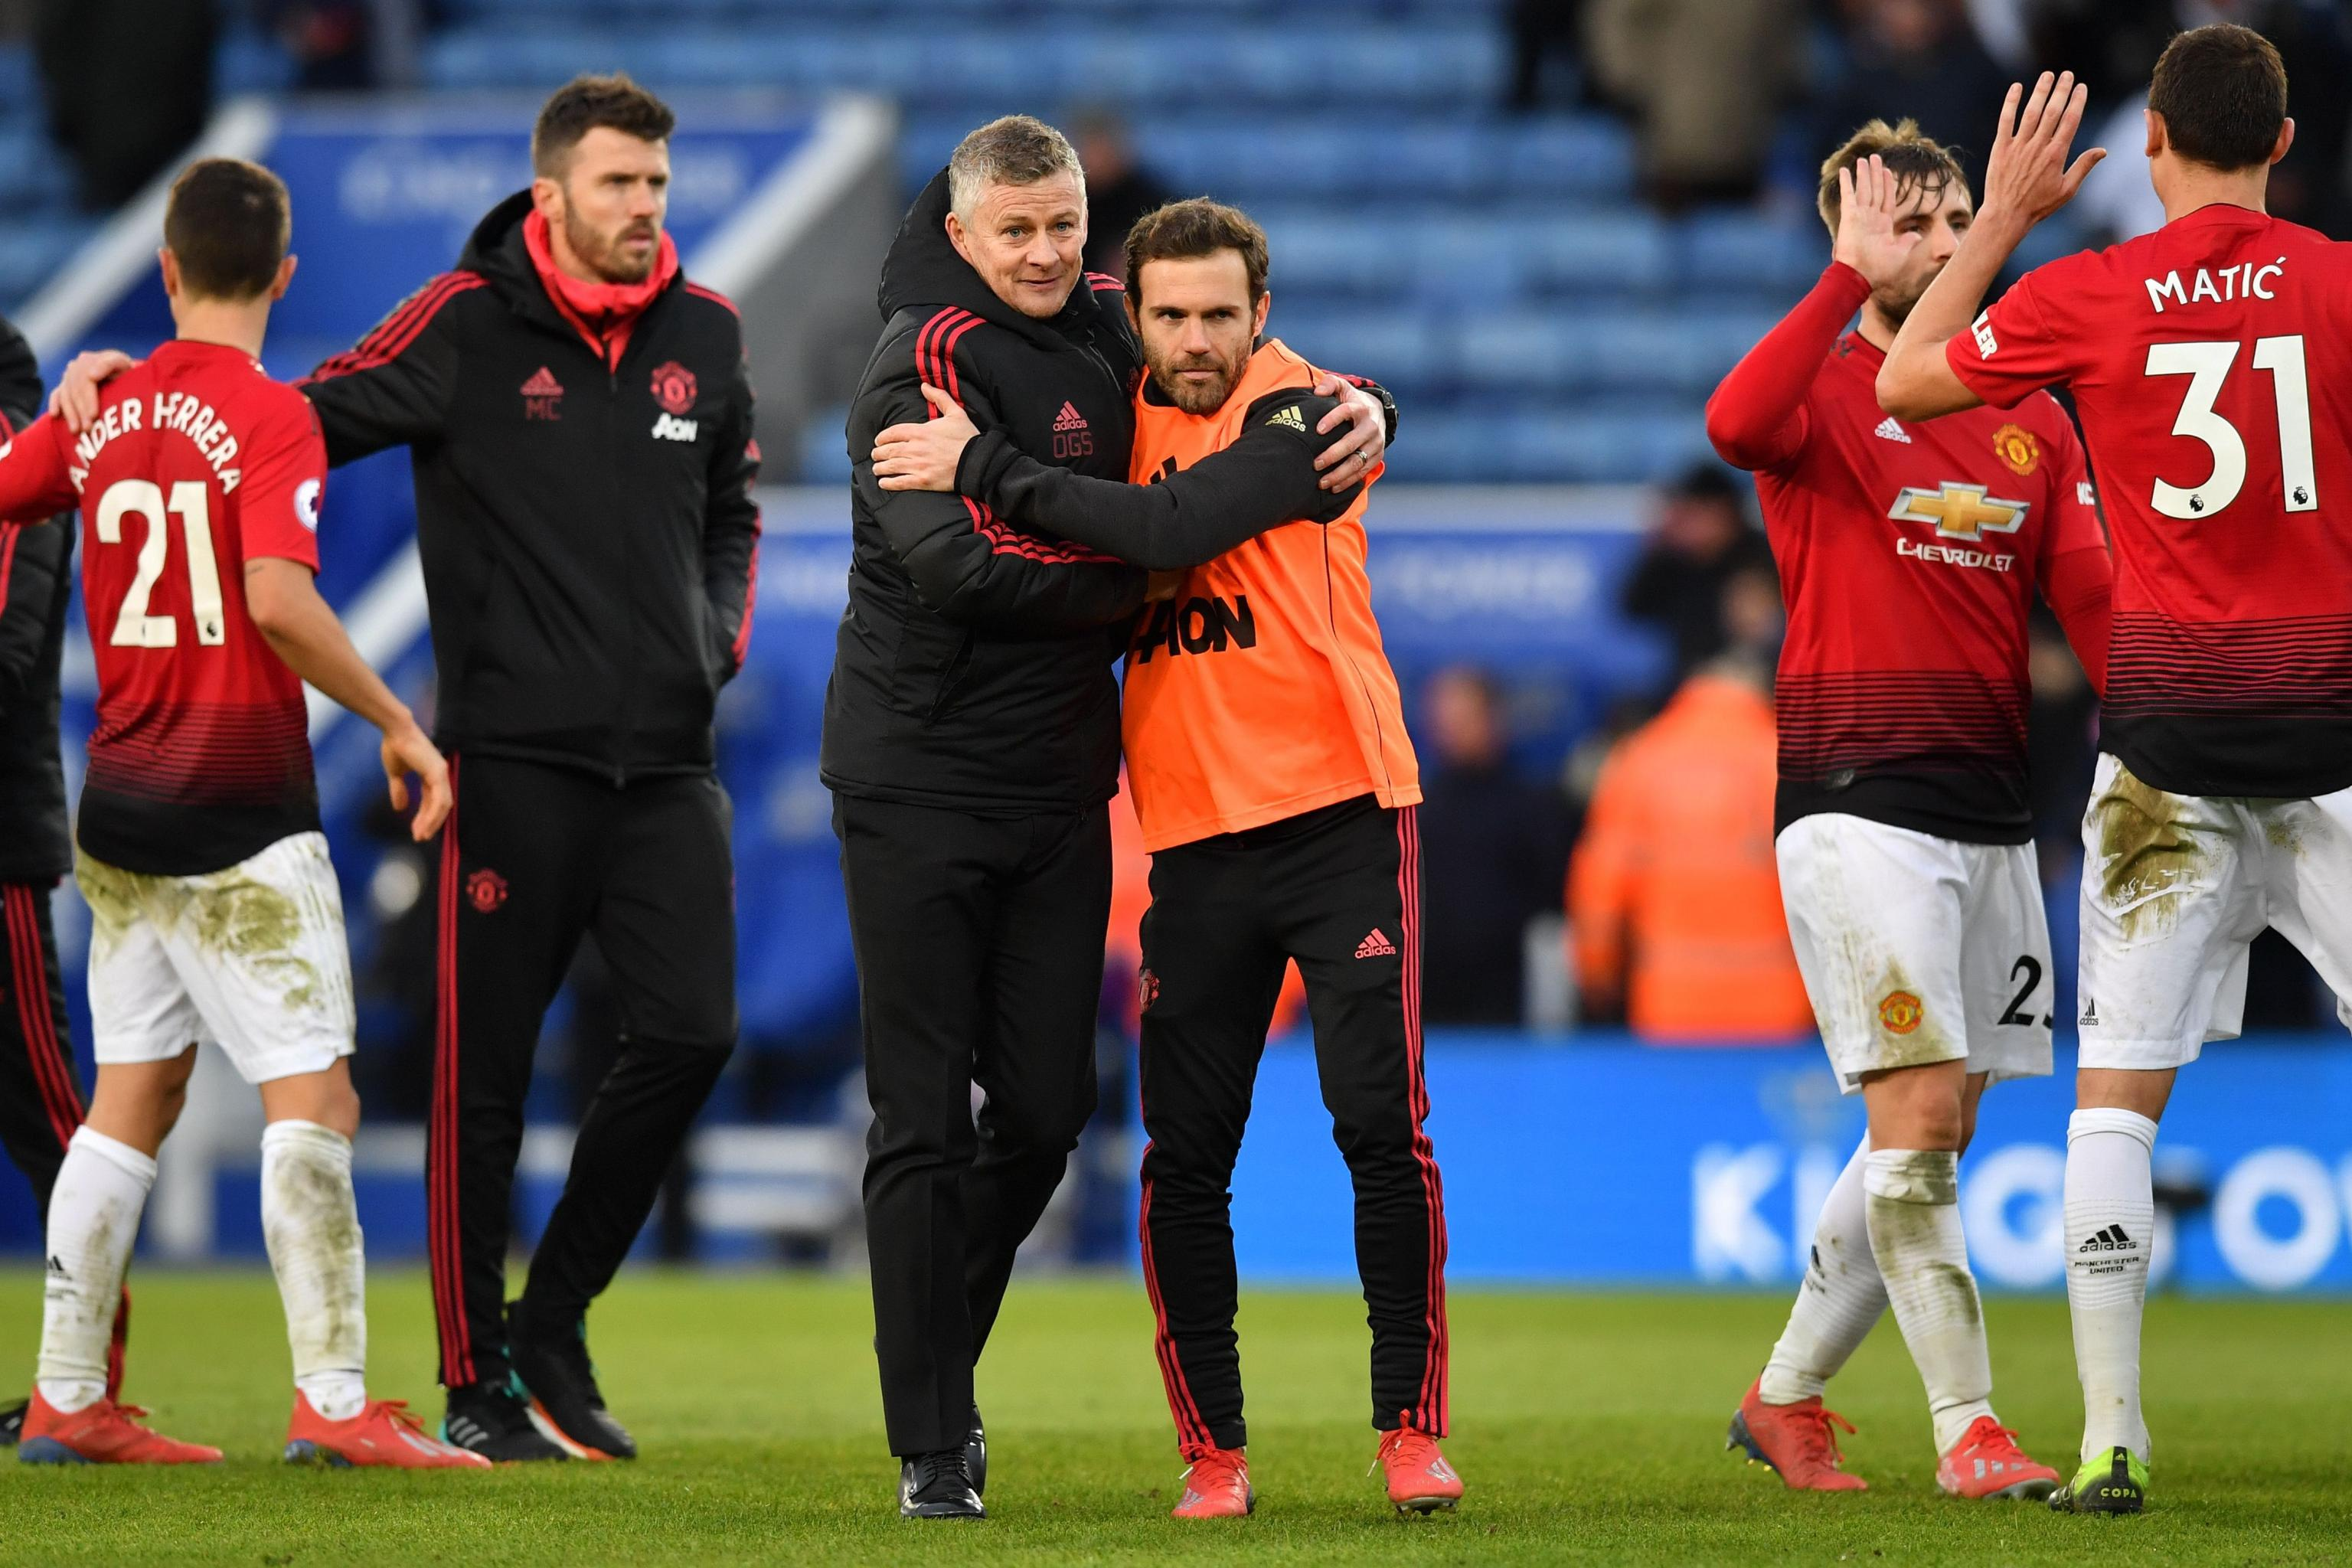 Juan Mata: There's 'Fantastic Chemistry' Between Players